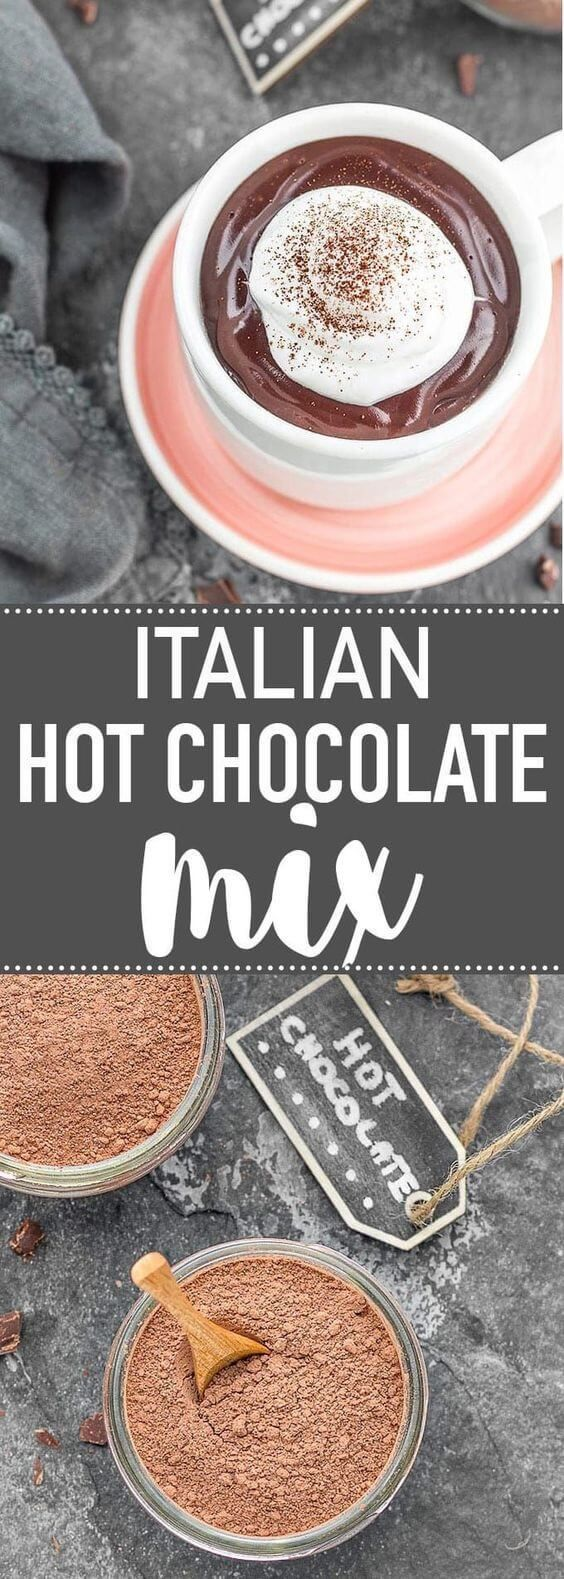 about Hot Chocolate Gifts on Pinterest | Christmas hamper, Chocolate ...